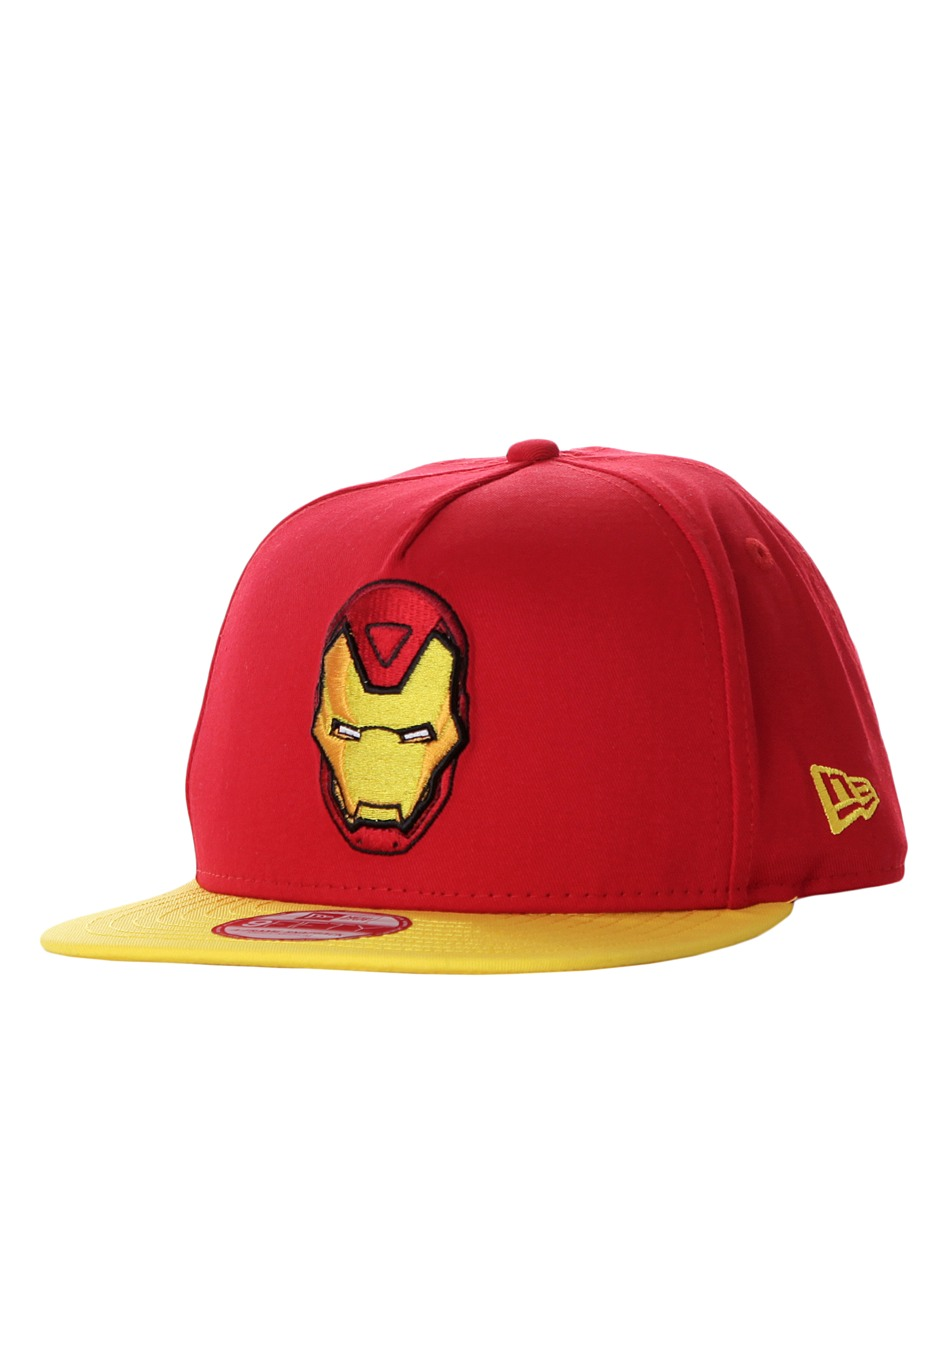 New Era - Basic Badge 9Fifty Ironman Red - Cap - Impericon.com Worldwide ba864dac724d